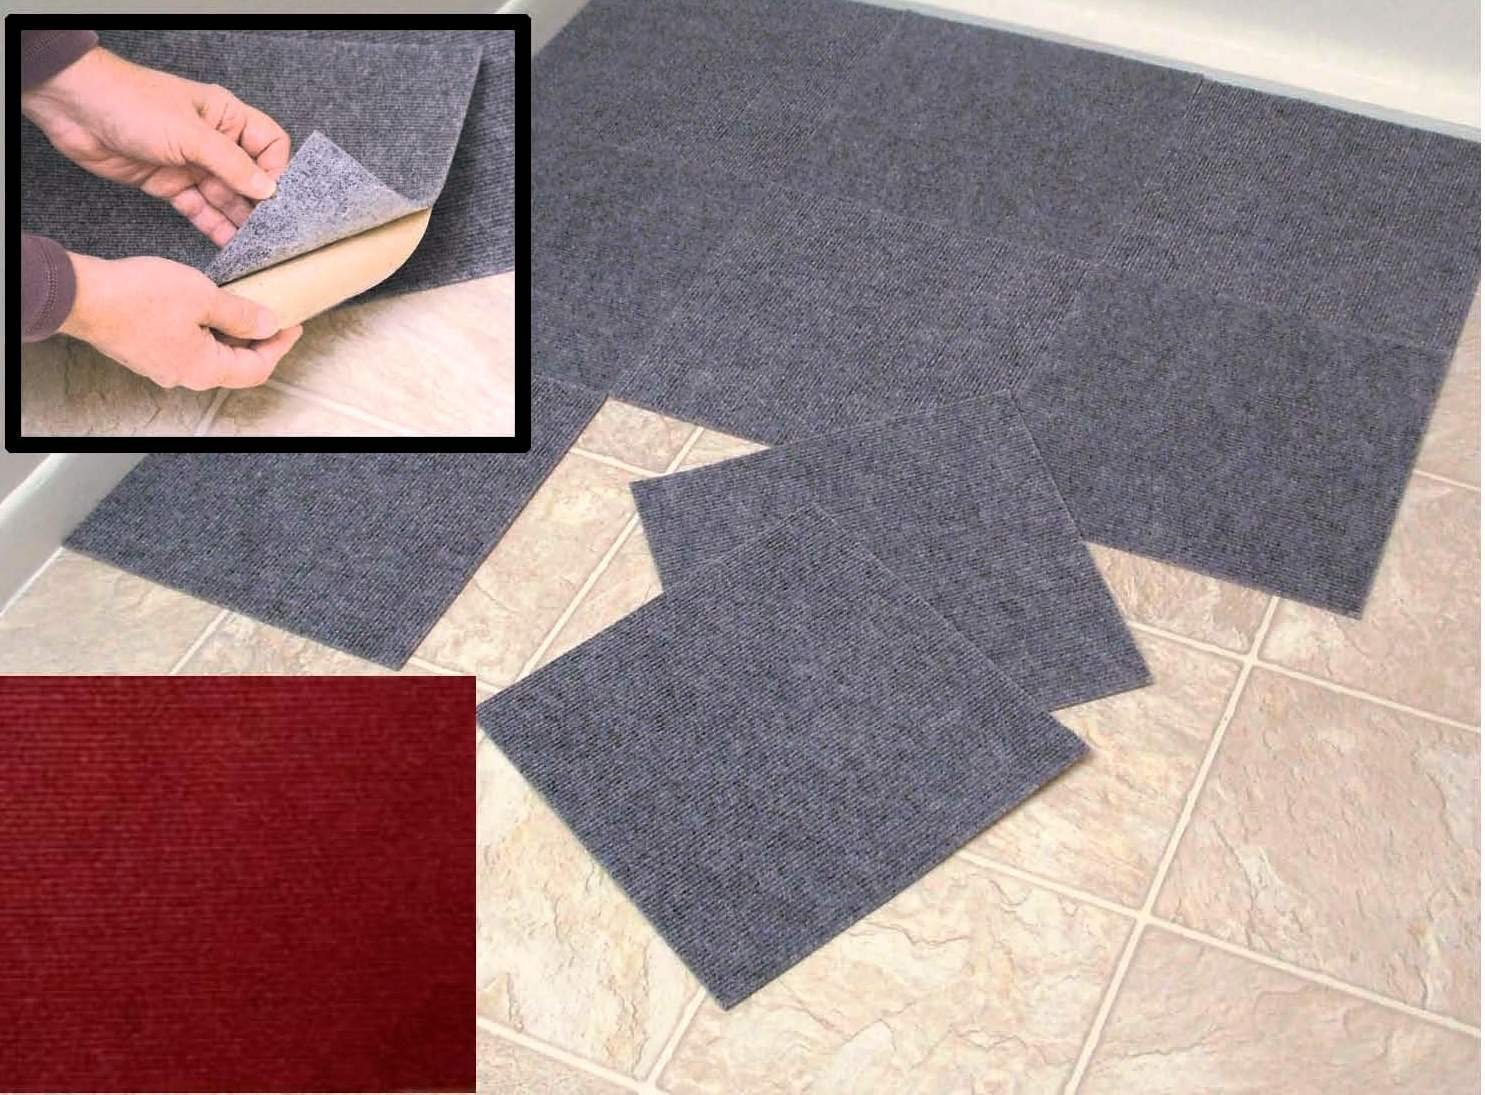 Amazon peel stick berber carpet tiles set of 10 gray by jumbl amazon peel stick berber carpet tiles set of 10 gray by jumbl kitchen dining dailygadgetfo Images